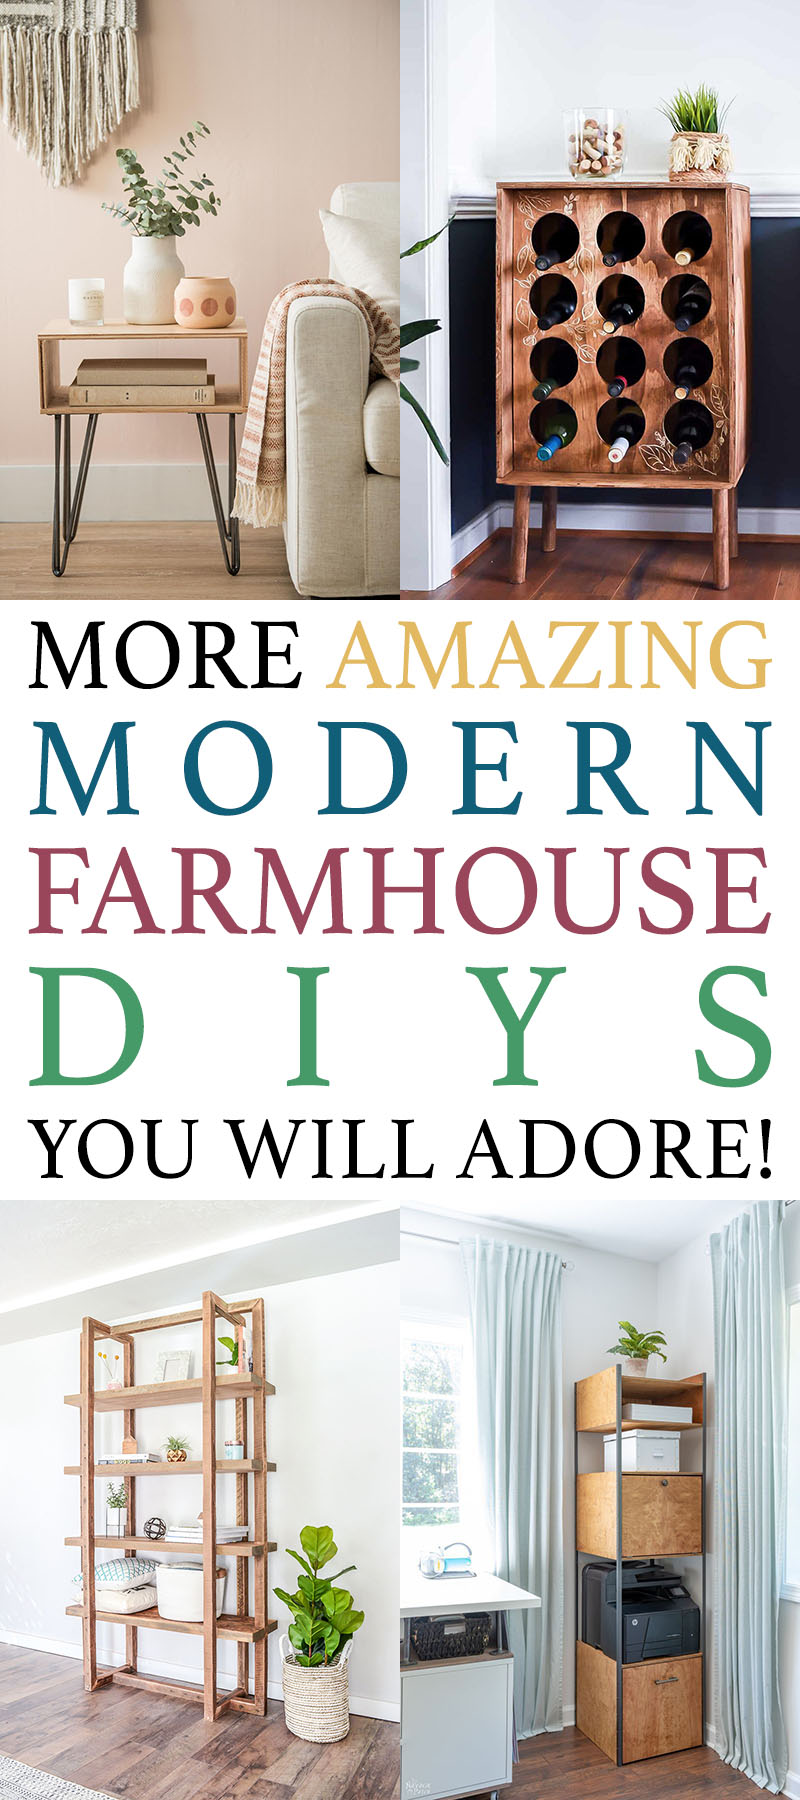 More Amazing Modern Farmhouse DIYS You Will Adore